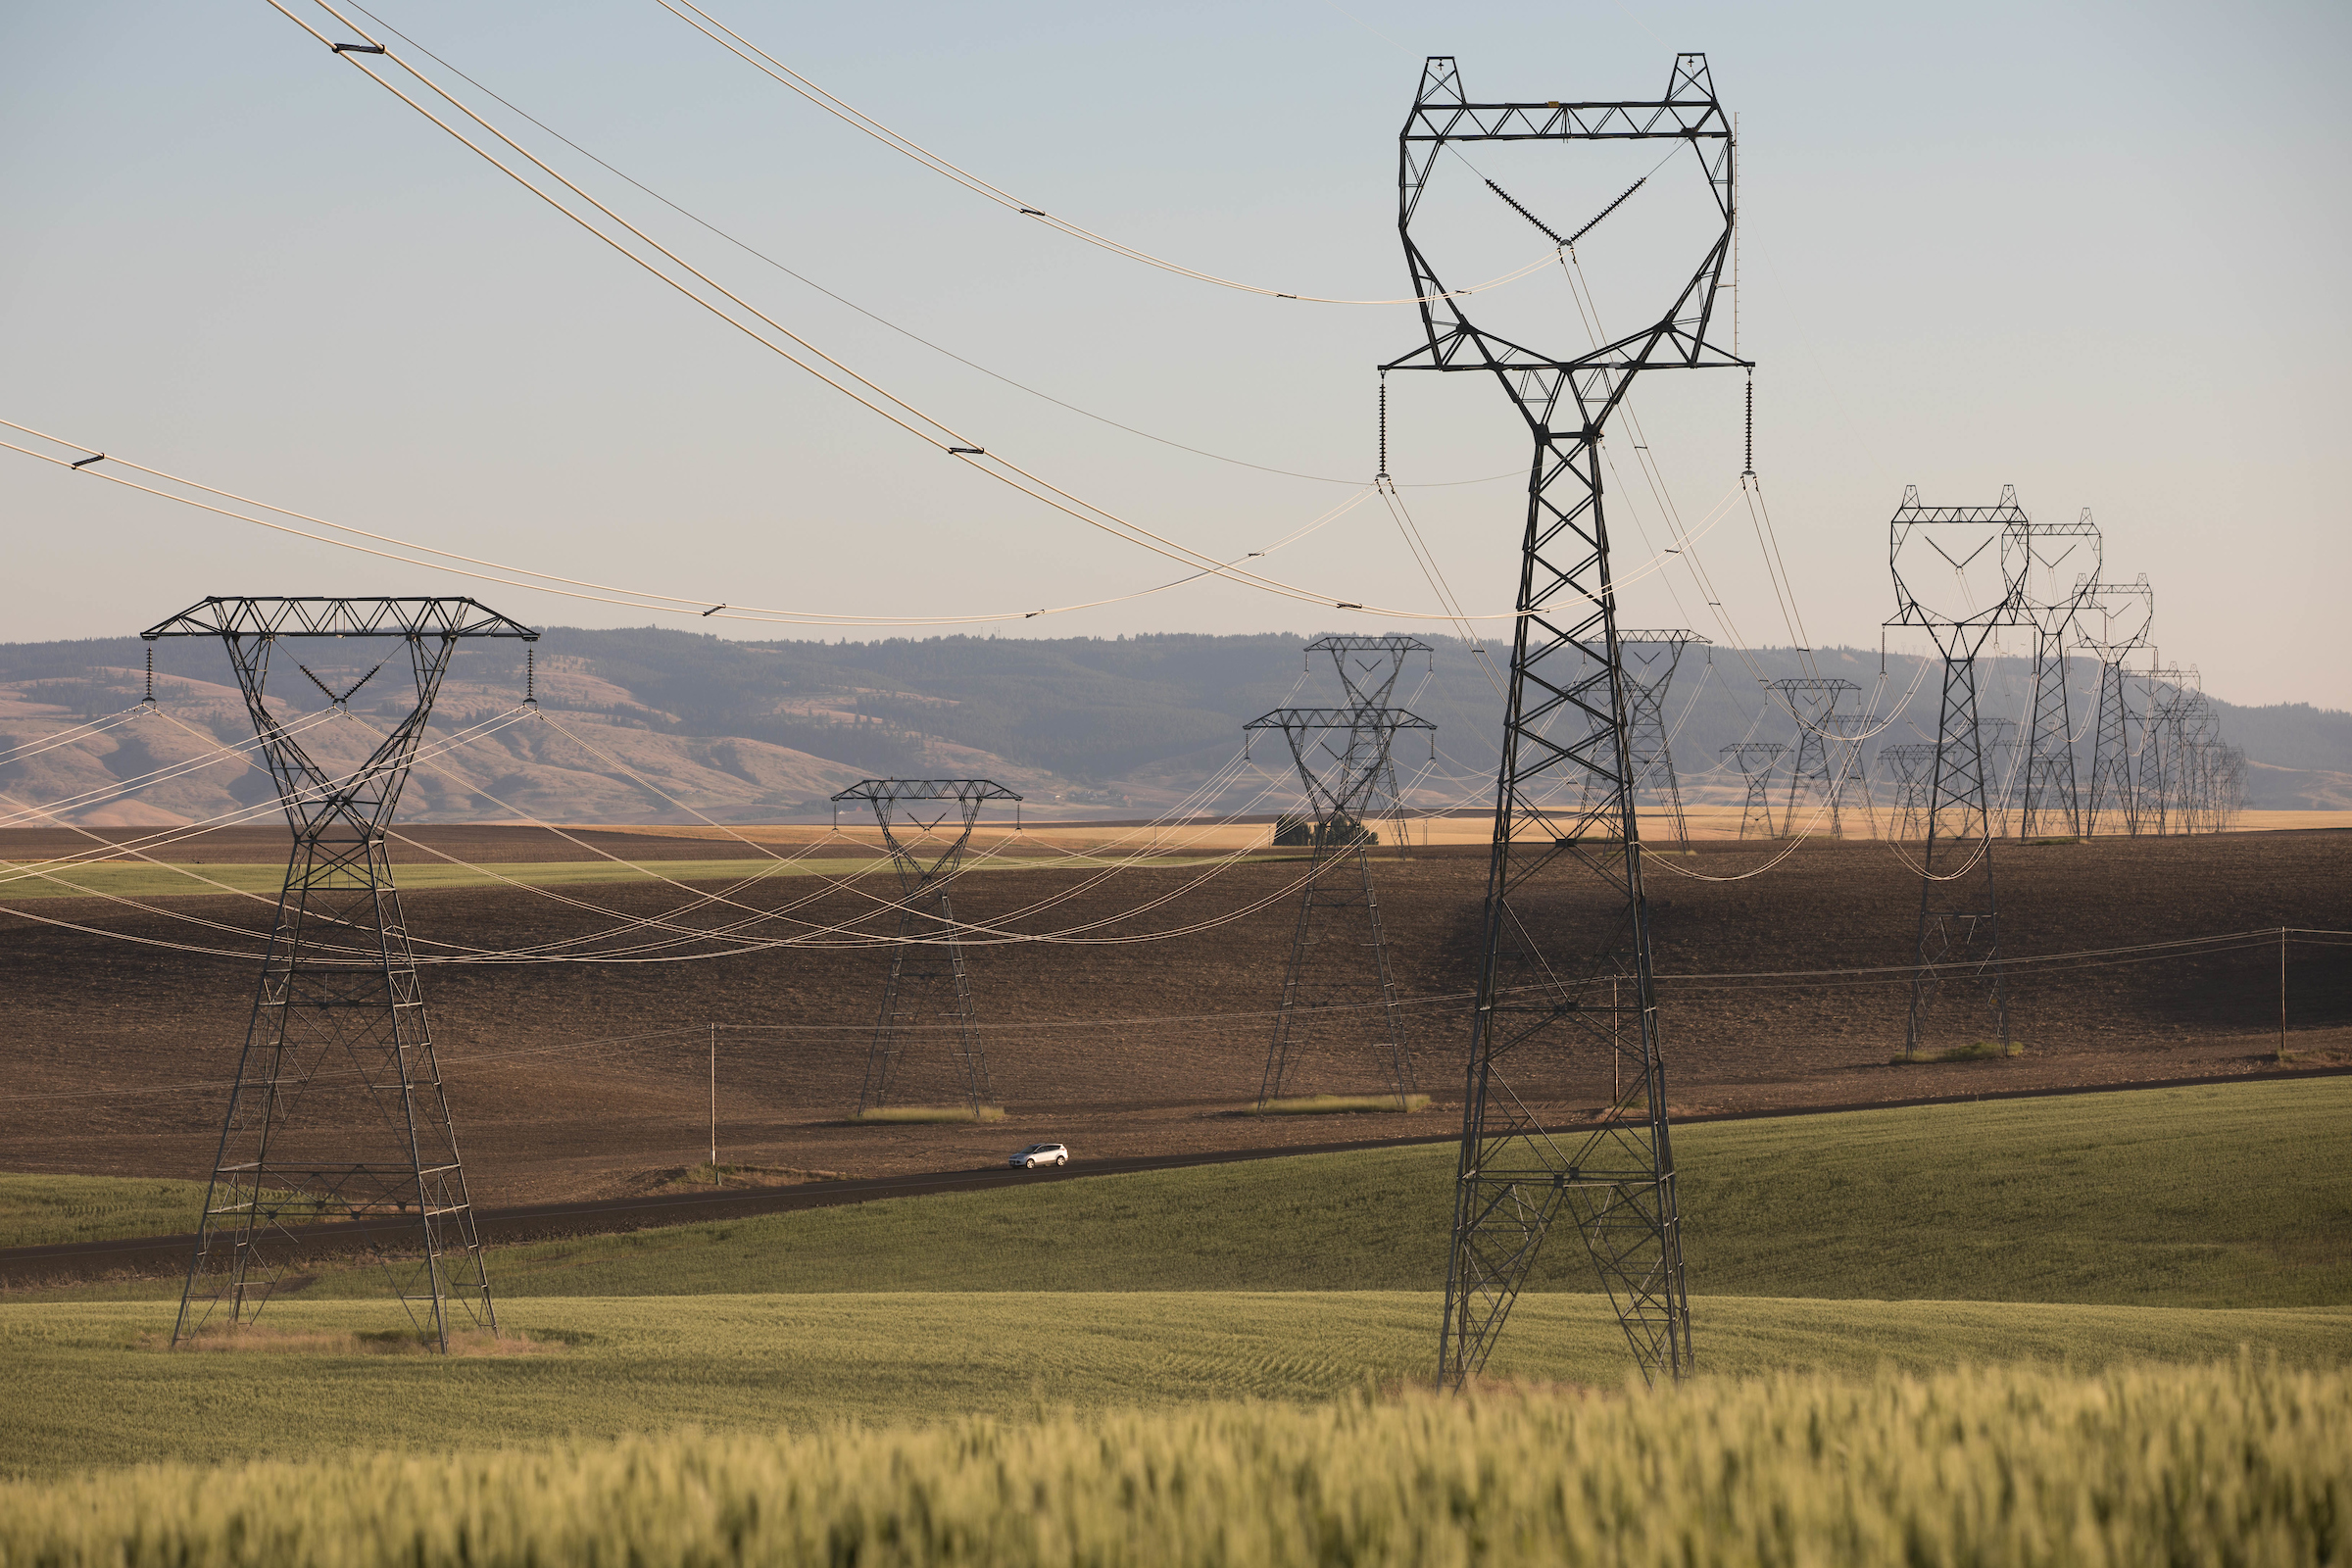 City Light Could Face Class Action Suit Over Billing Troubles Crosscut Electricity In Transmission Towers Seen Along The Waterville Plateau Eastern Washington State July 21 2017 While It Has Its Own Power Generating Facilities